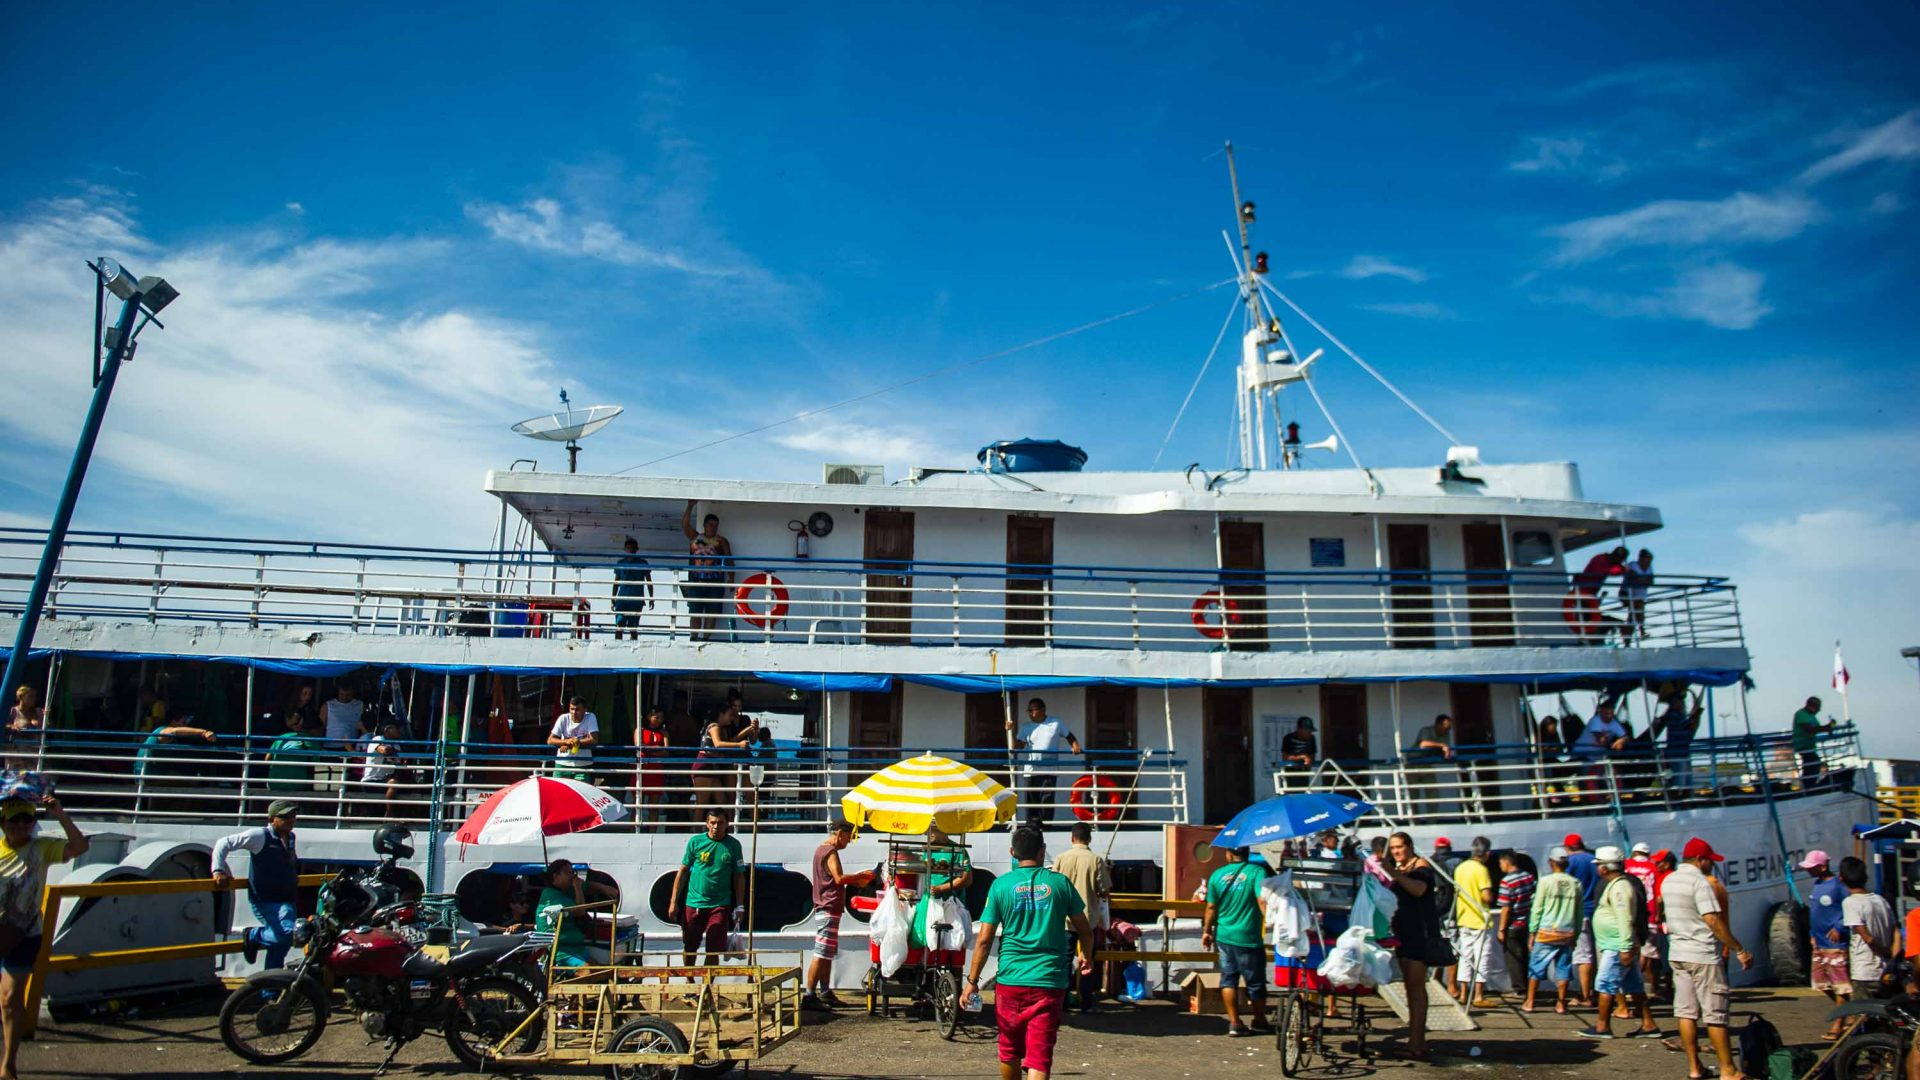 The Cisne Branco riverboat's first port of call is Parantins in the state of Amazonas.